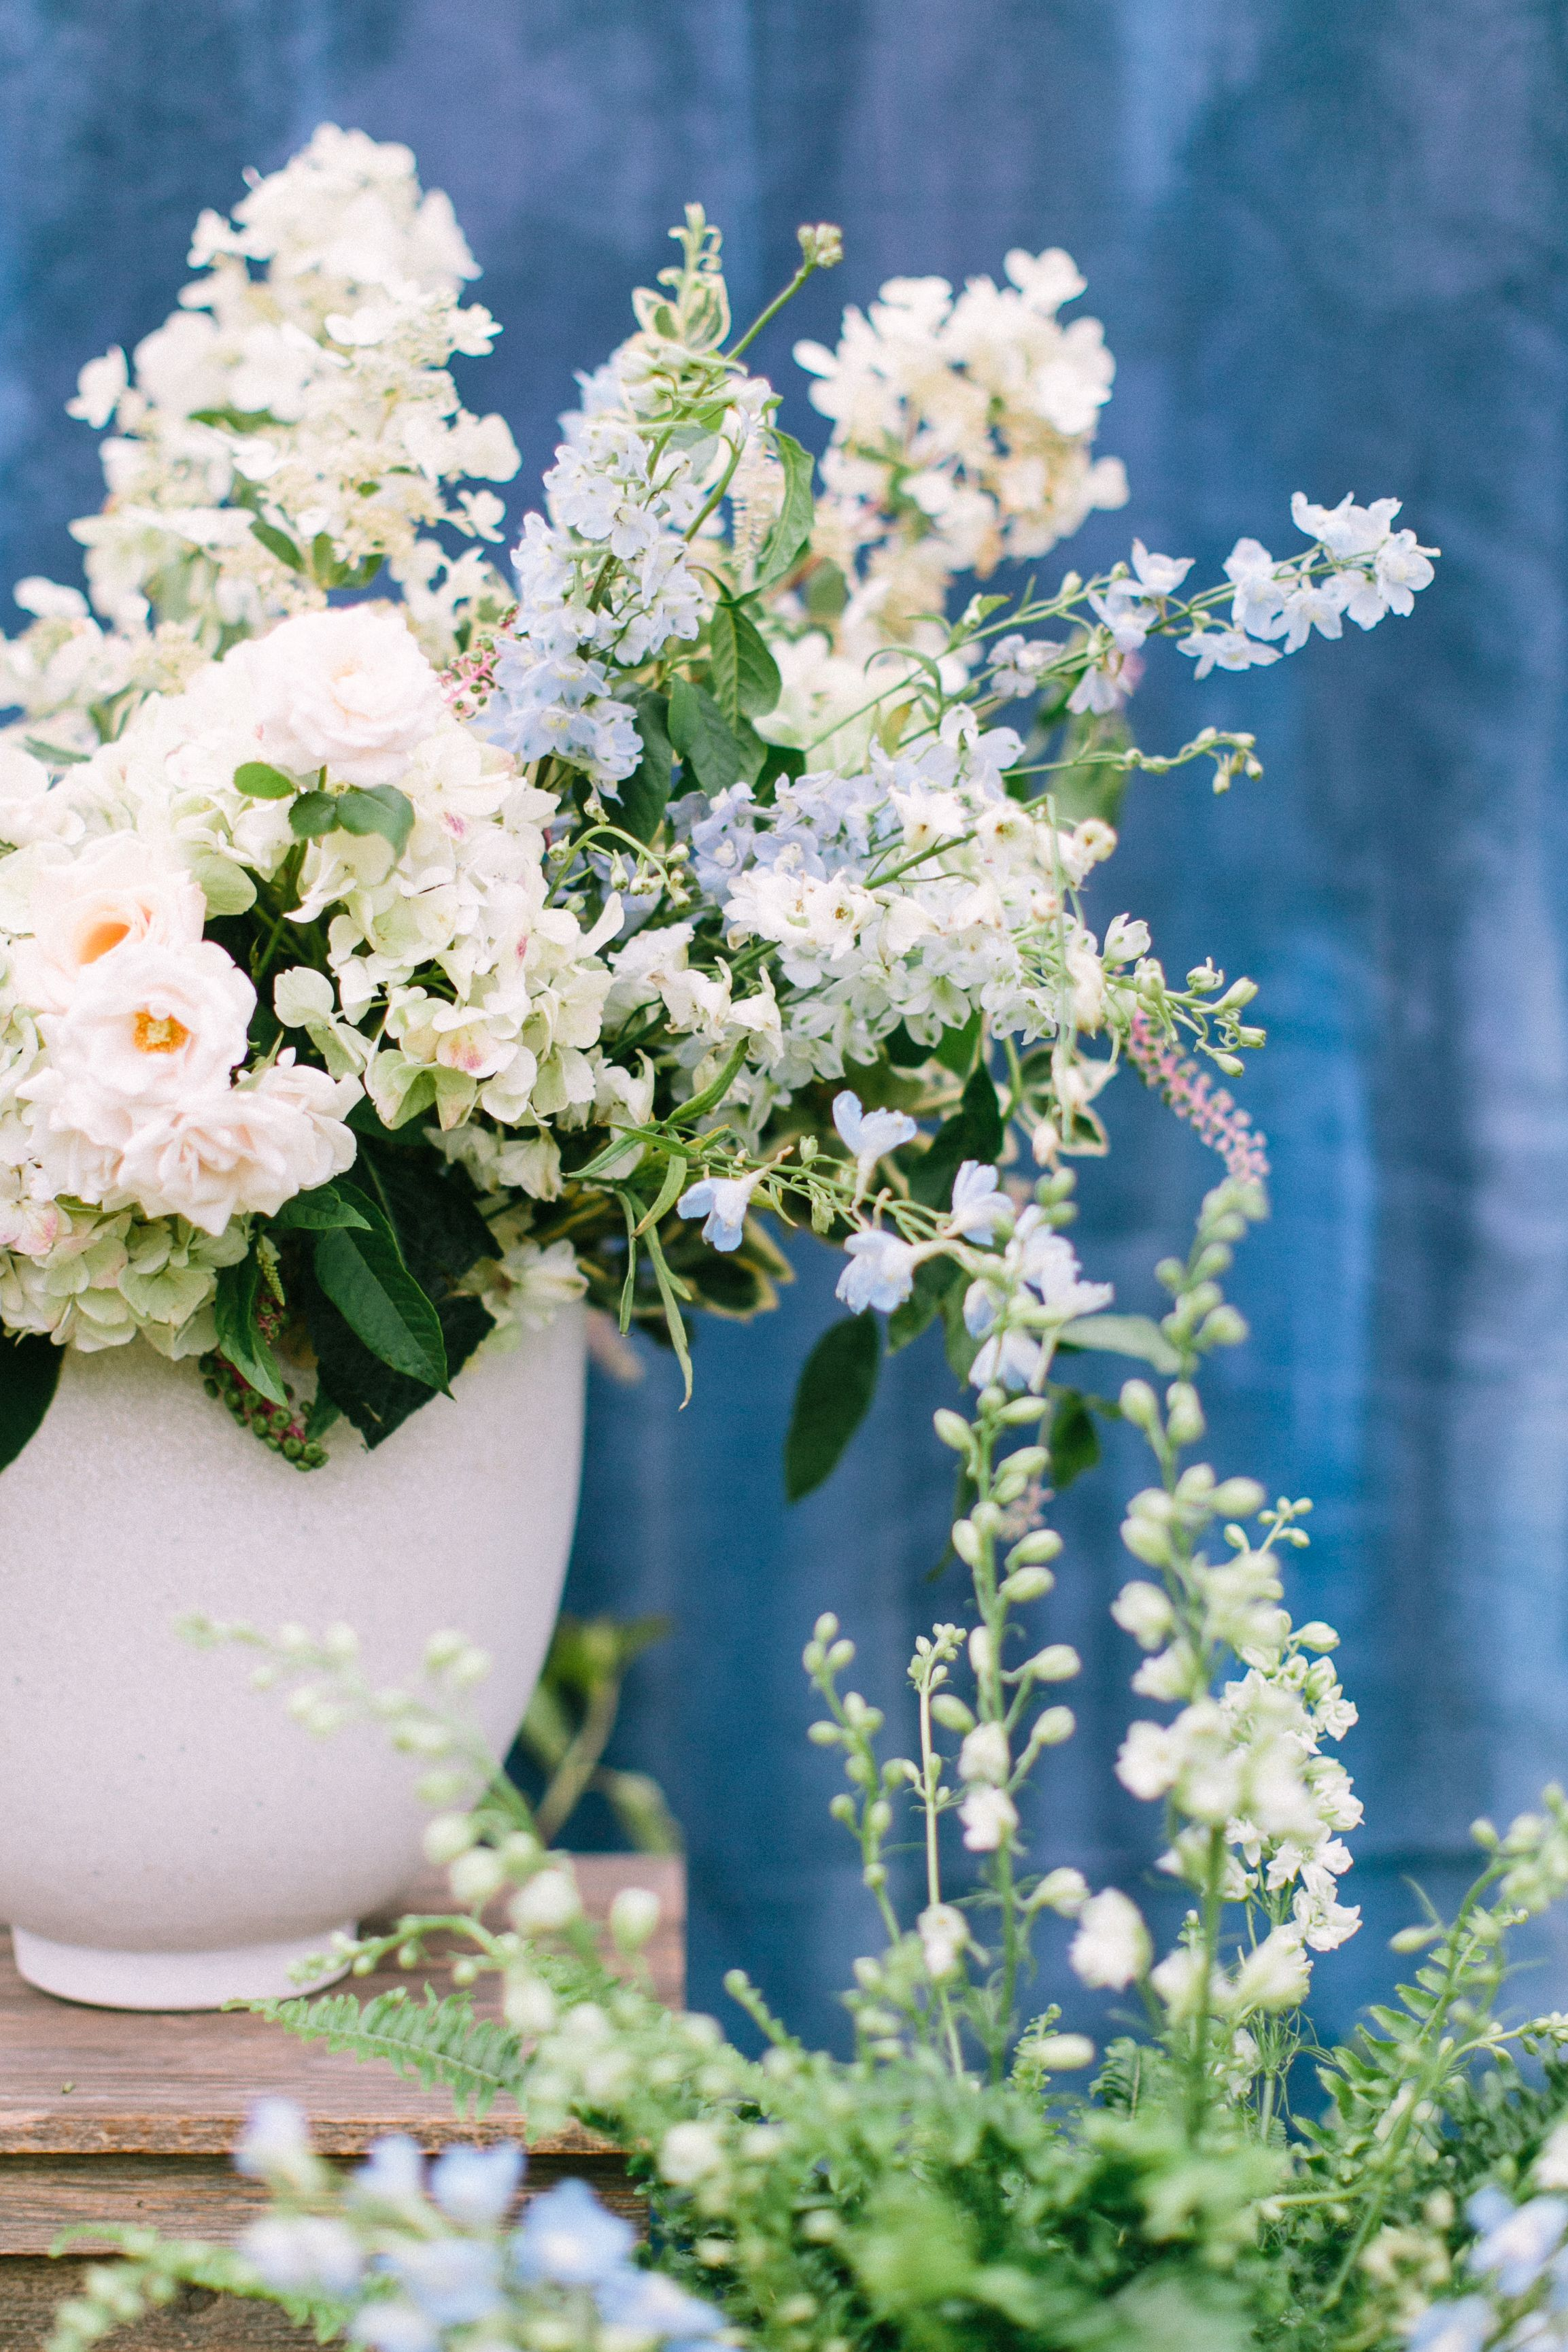 Sink those pearly whites into these dentistsu big day flowers